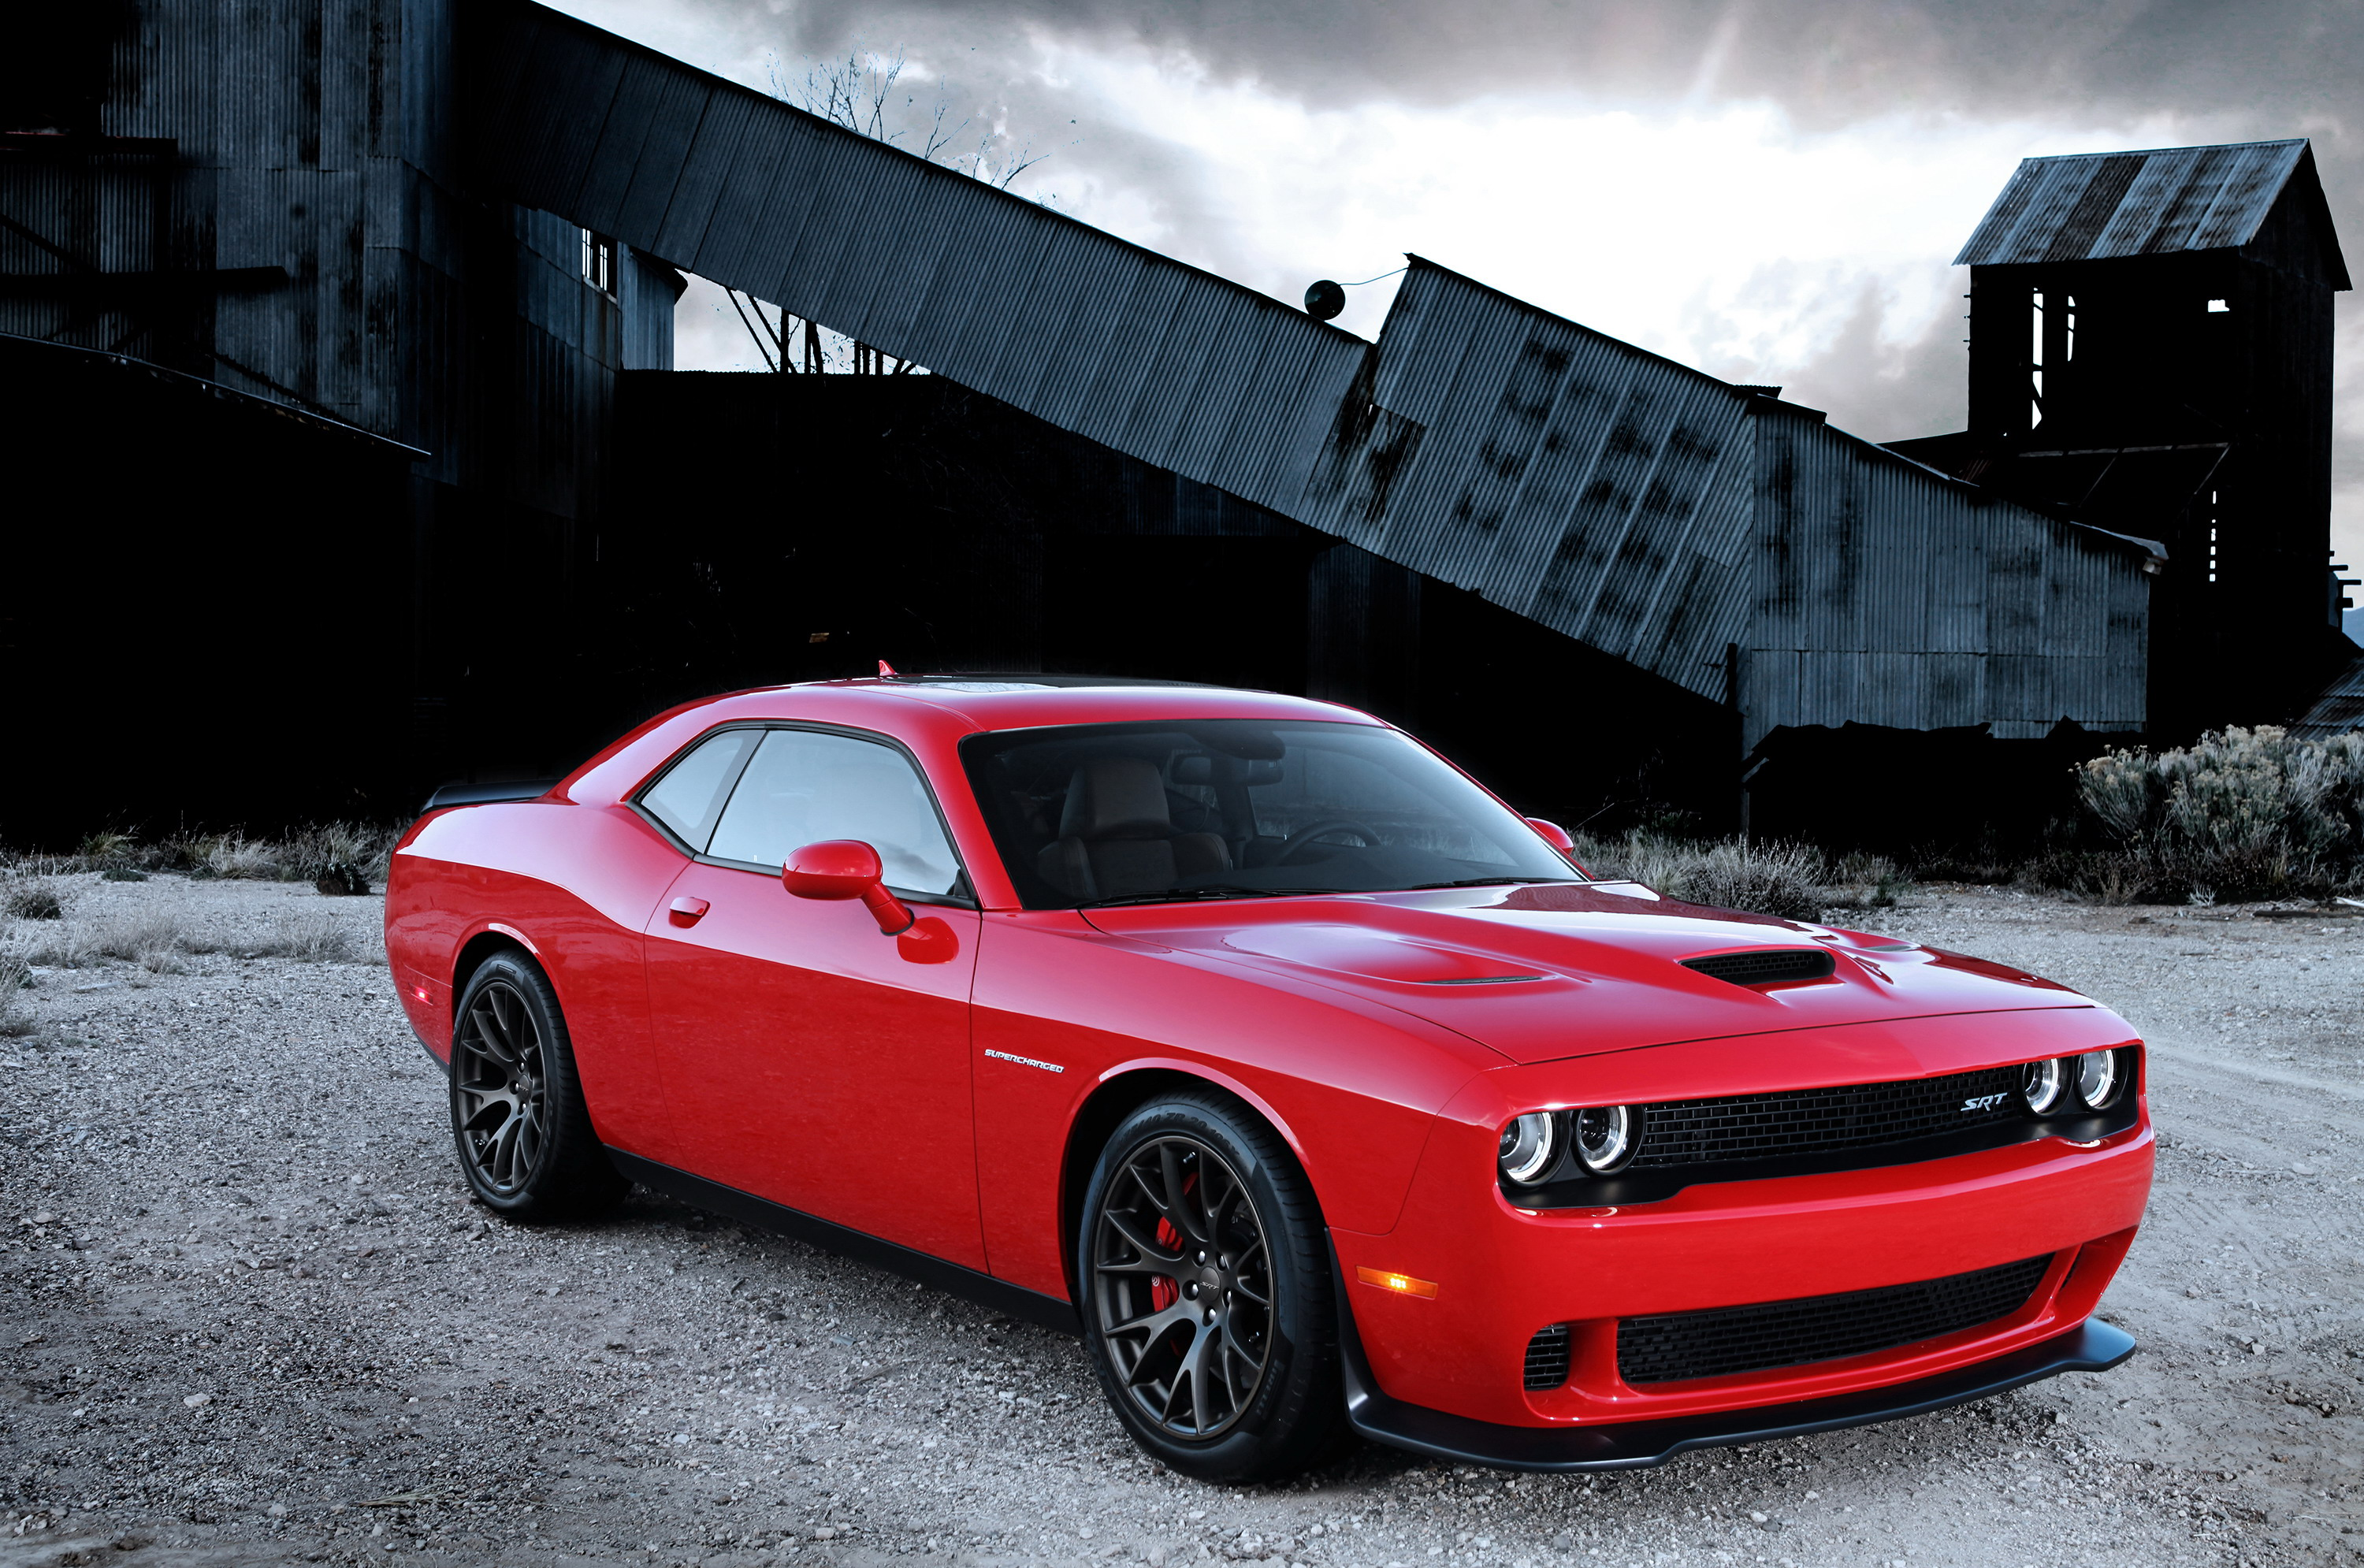 2015 Dodge Challenger SRT Hellcat | Top Speed